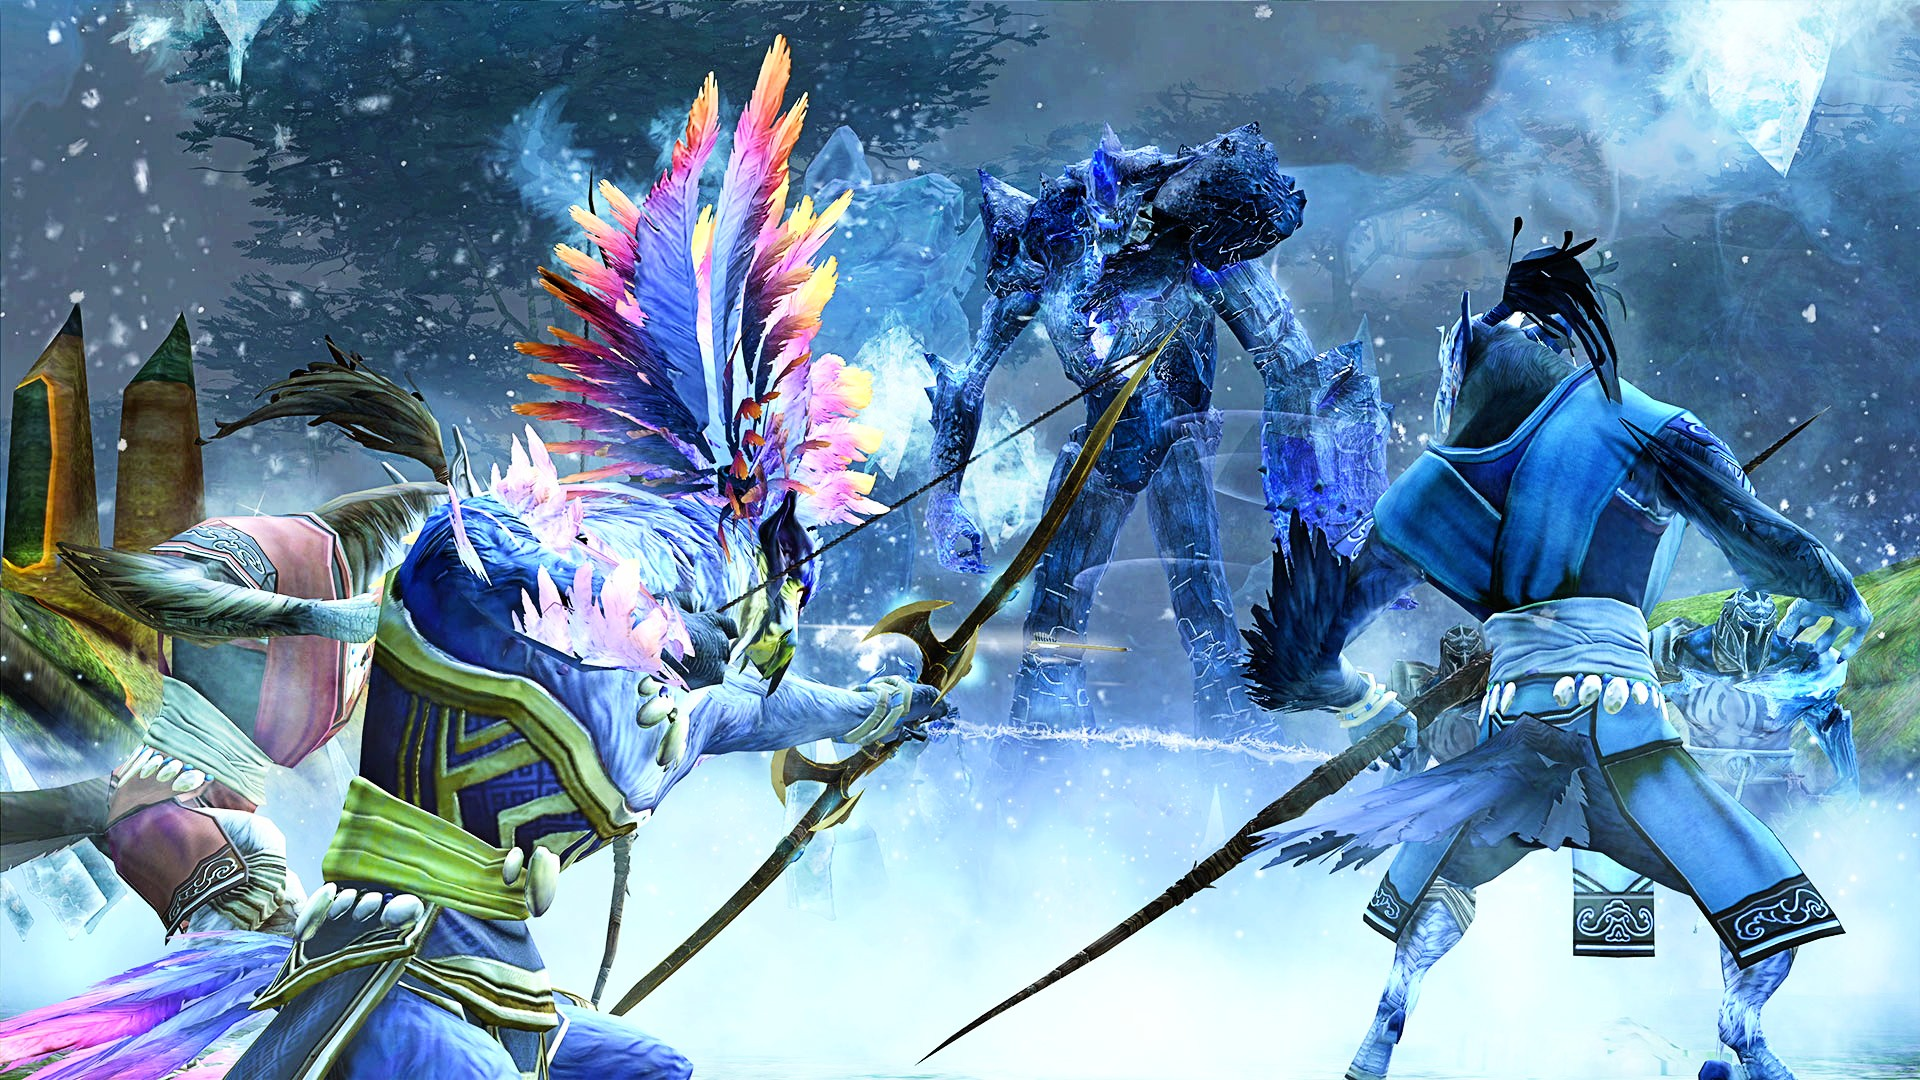 Guild Wars 2: The Icebrood Saga's finale continues today with Balance